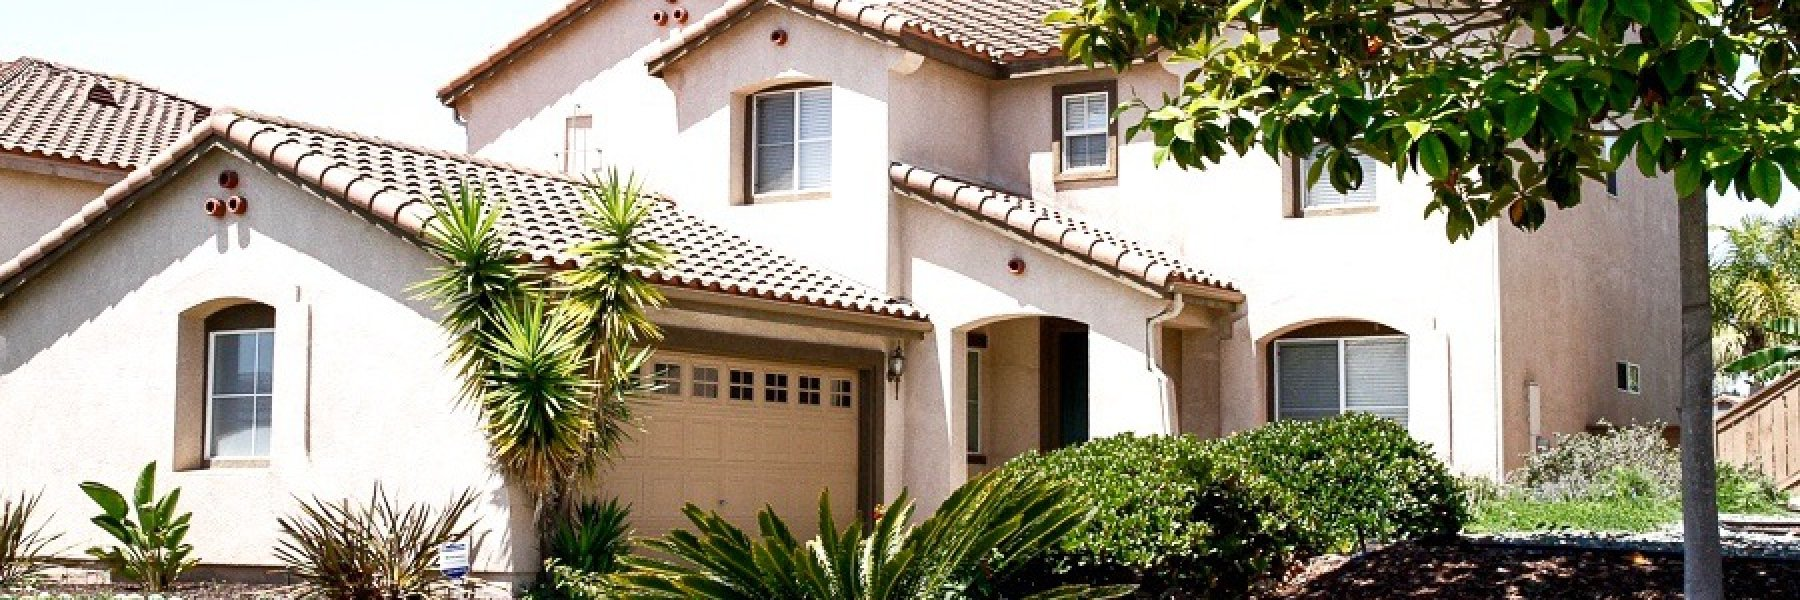 Sunbow is a community of homes in Chula Vista